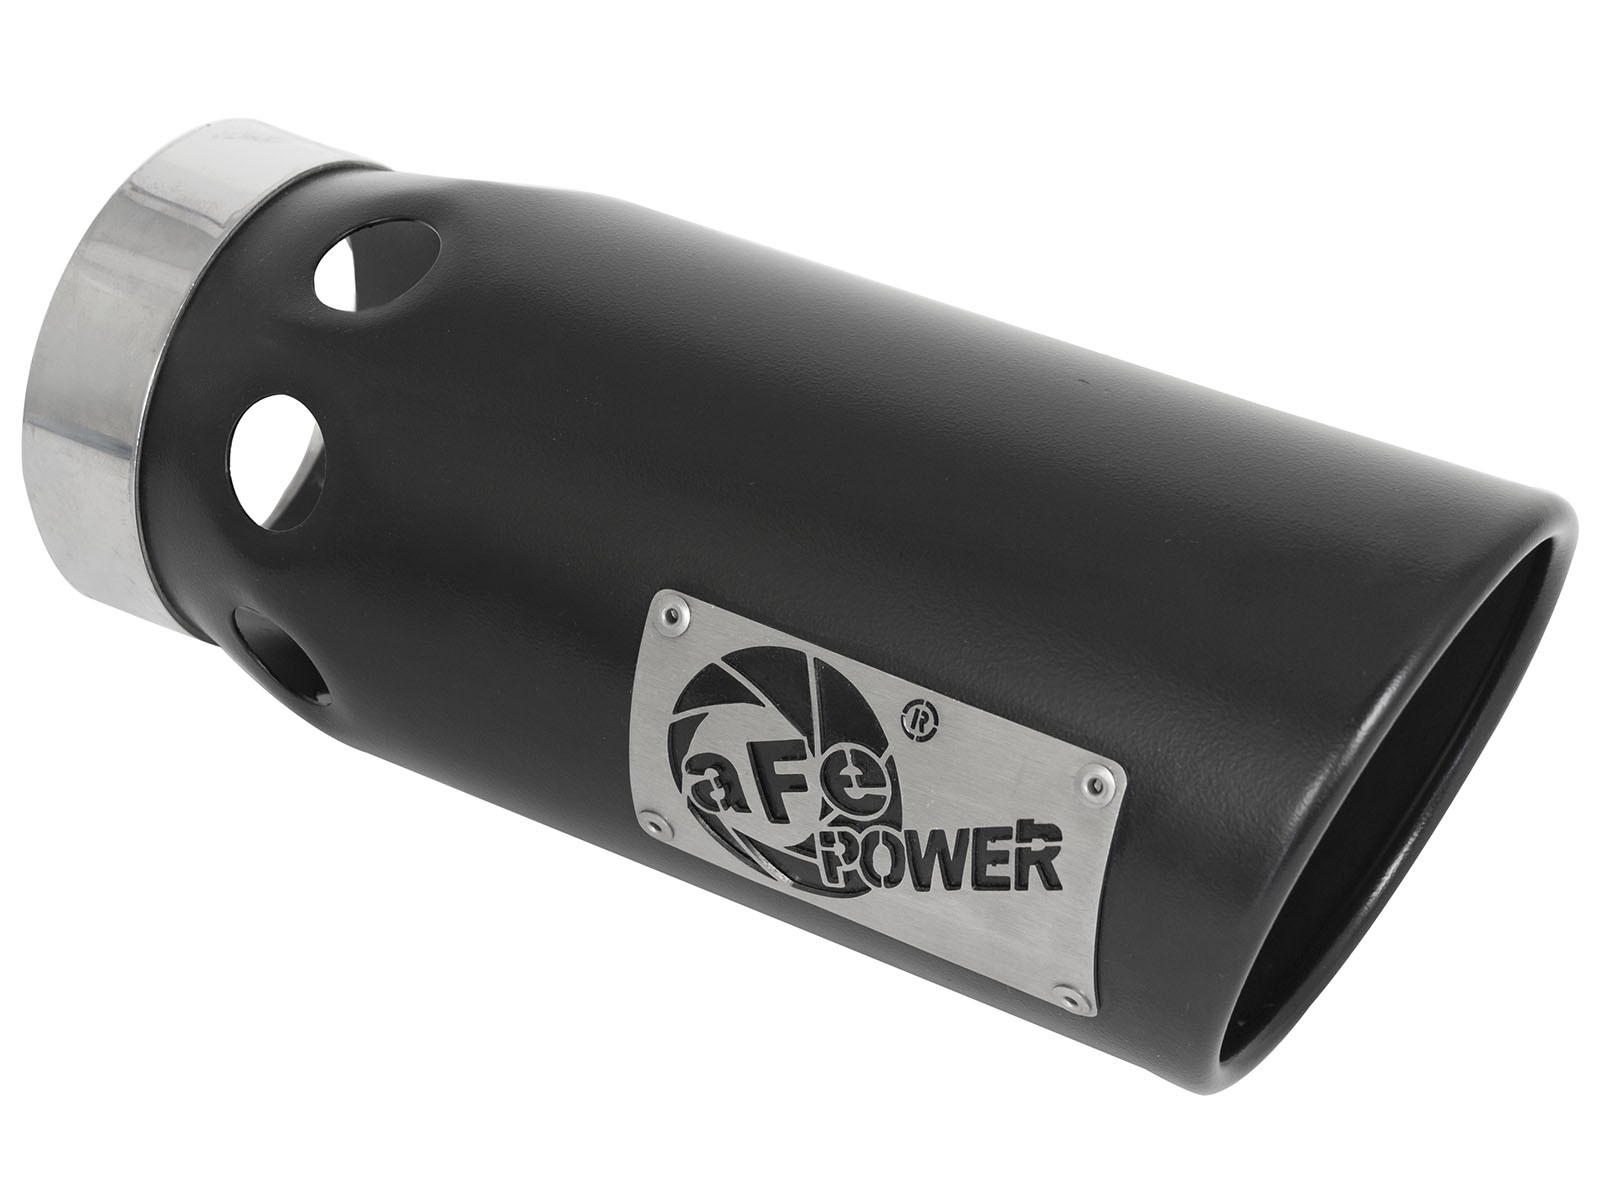 """aFe POWER 49T40501-B121 MACH Force-Xp 4"""" 304 Stainless Steel Exhaust Tip"""